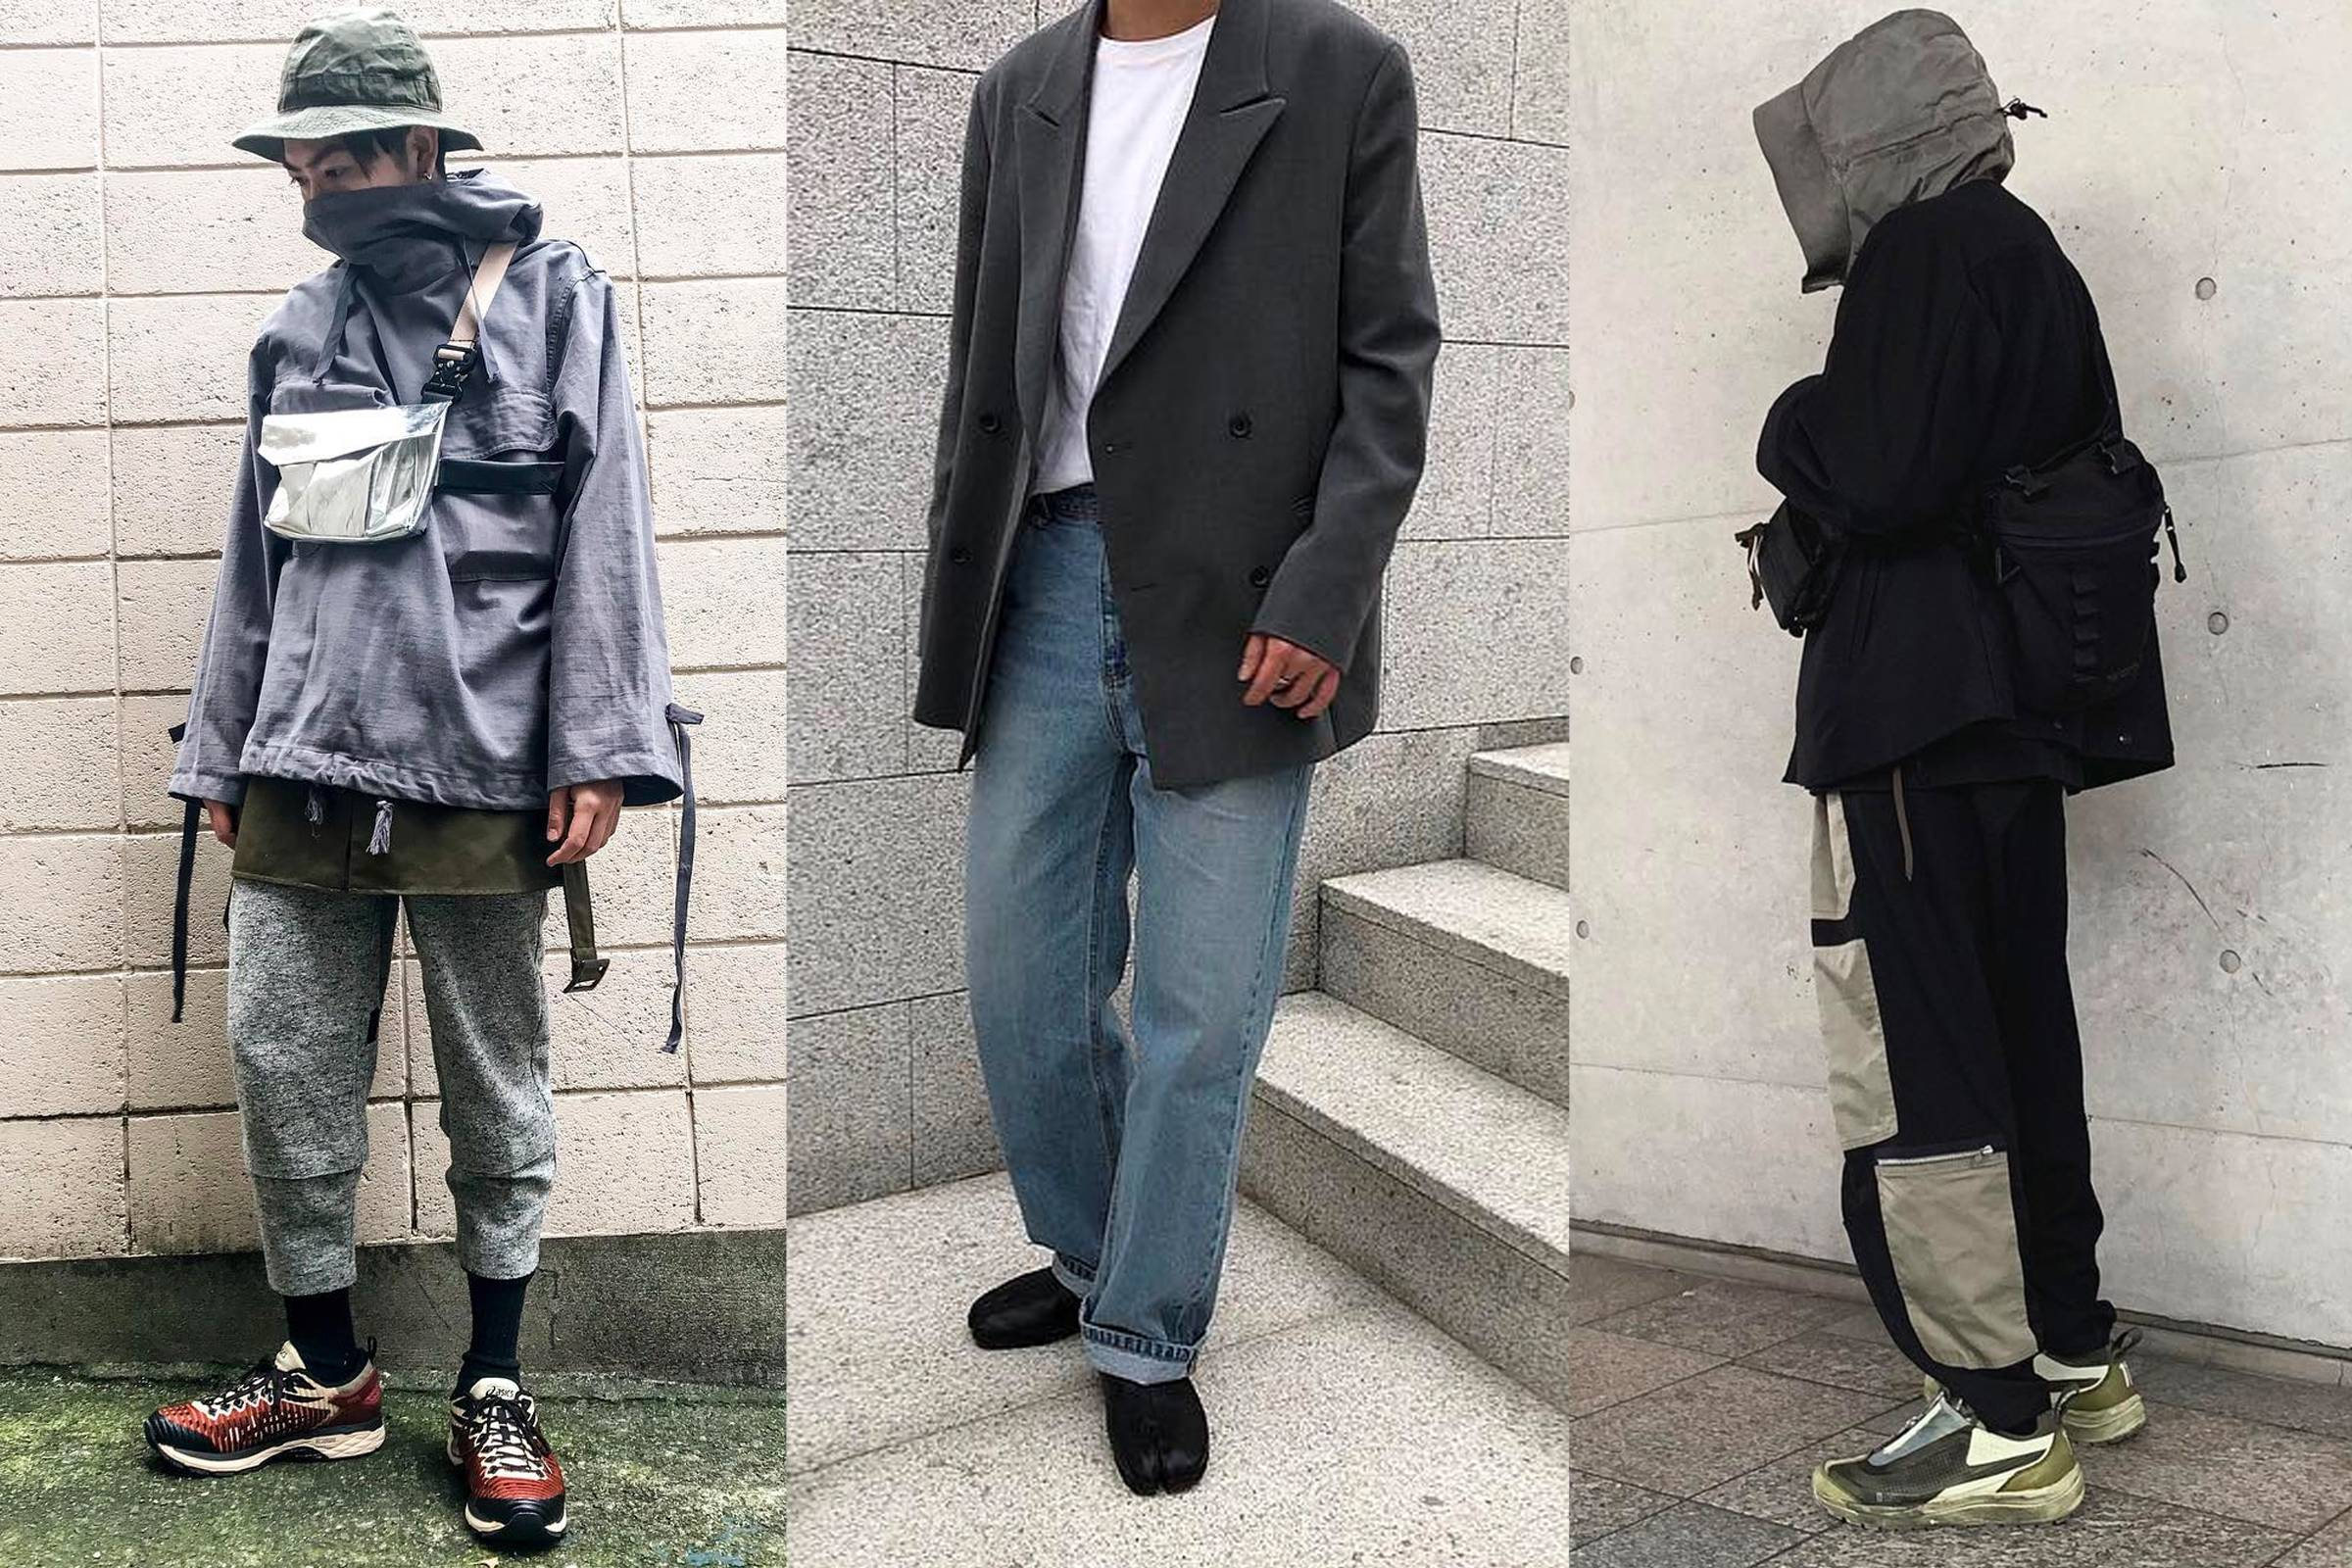 The Best #Grailfits Of The Week